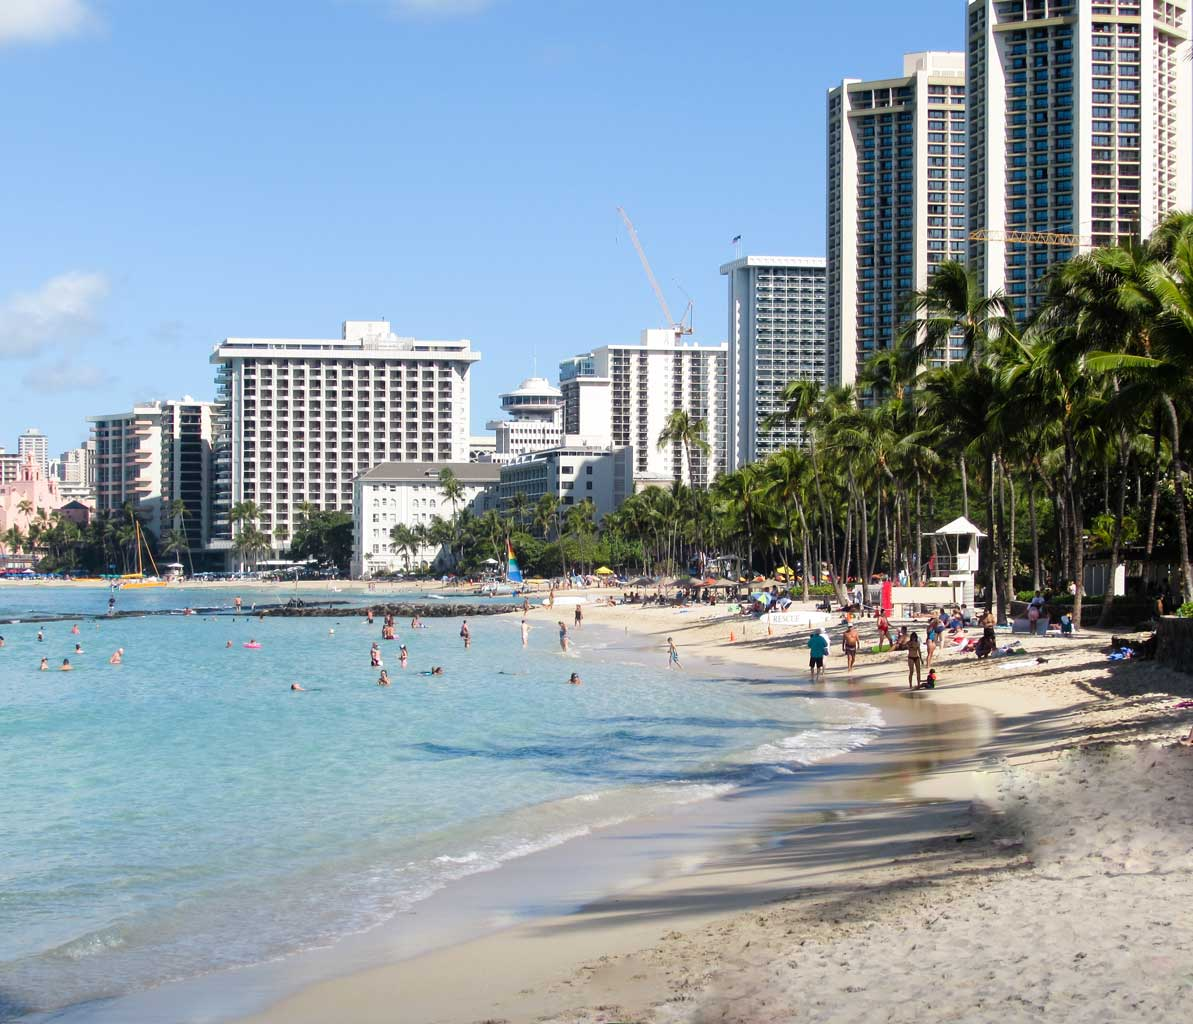 Waikiki Beach - Honolulu Travel Guide - 45 things to do in Honolulu - Christobel Travel